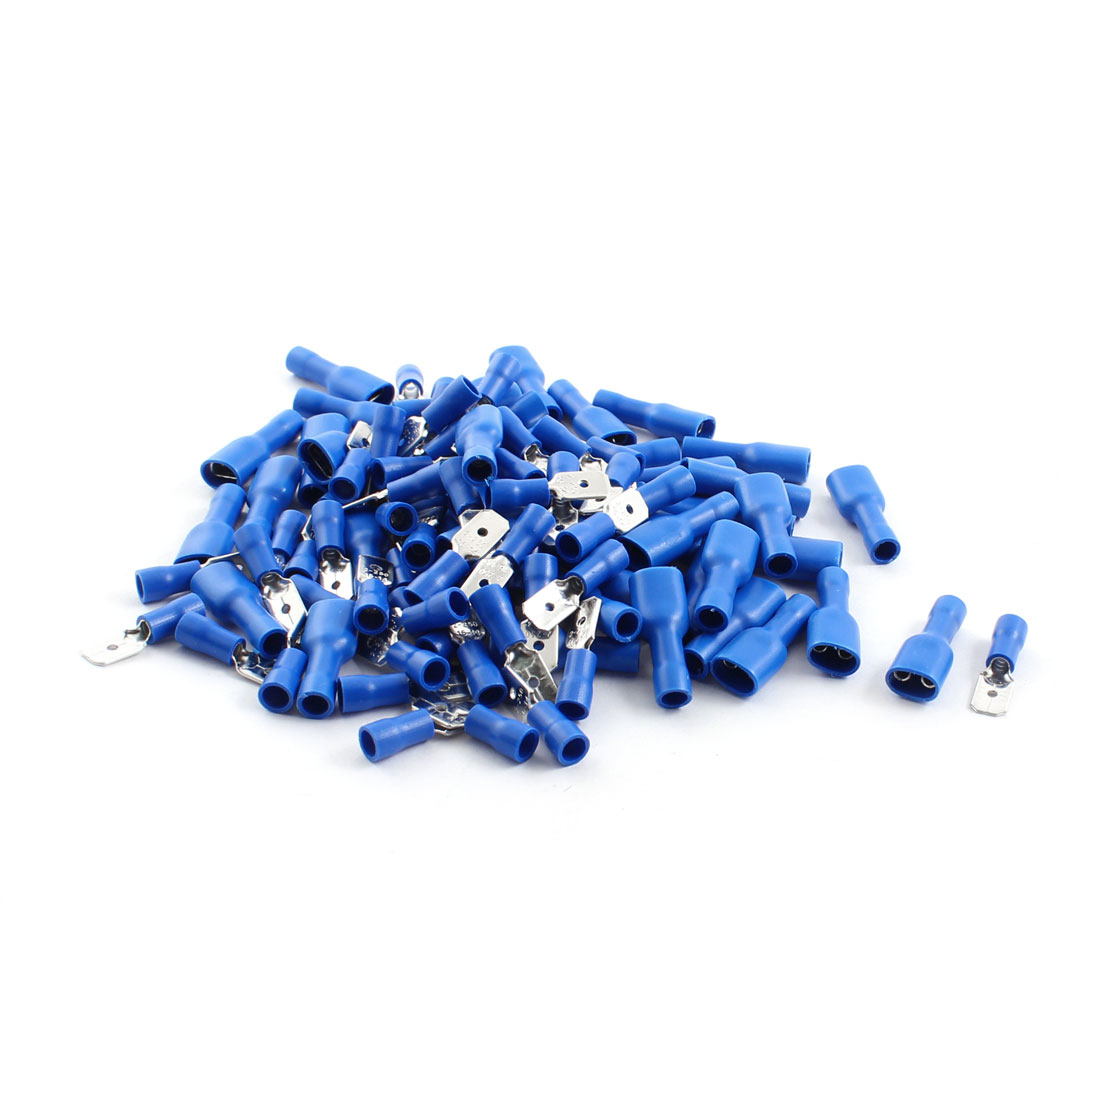 50 Sets FDFD2-250 ADD2-250 AWG 16-14 Cable Insulating Spade Crimp Terminals Blue